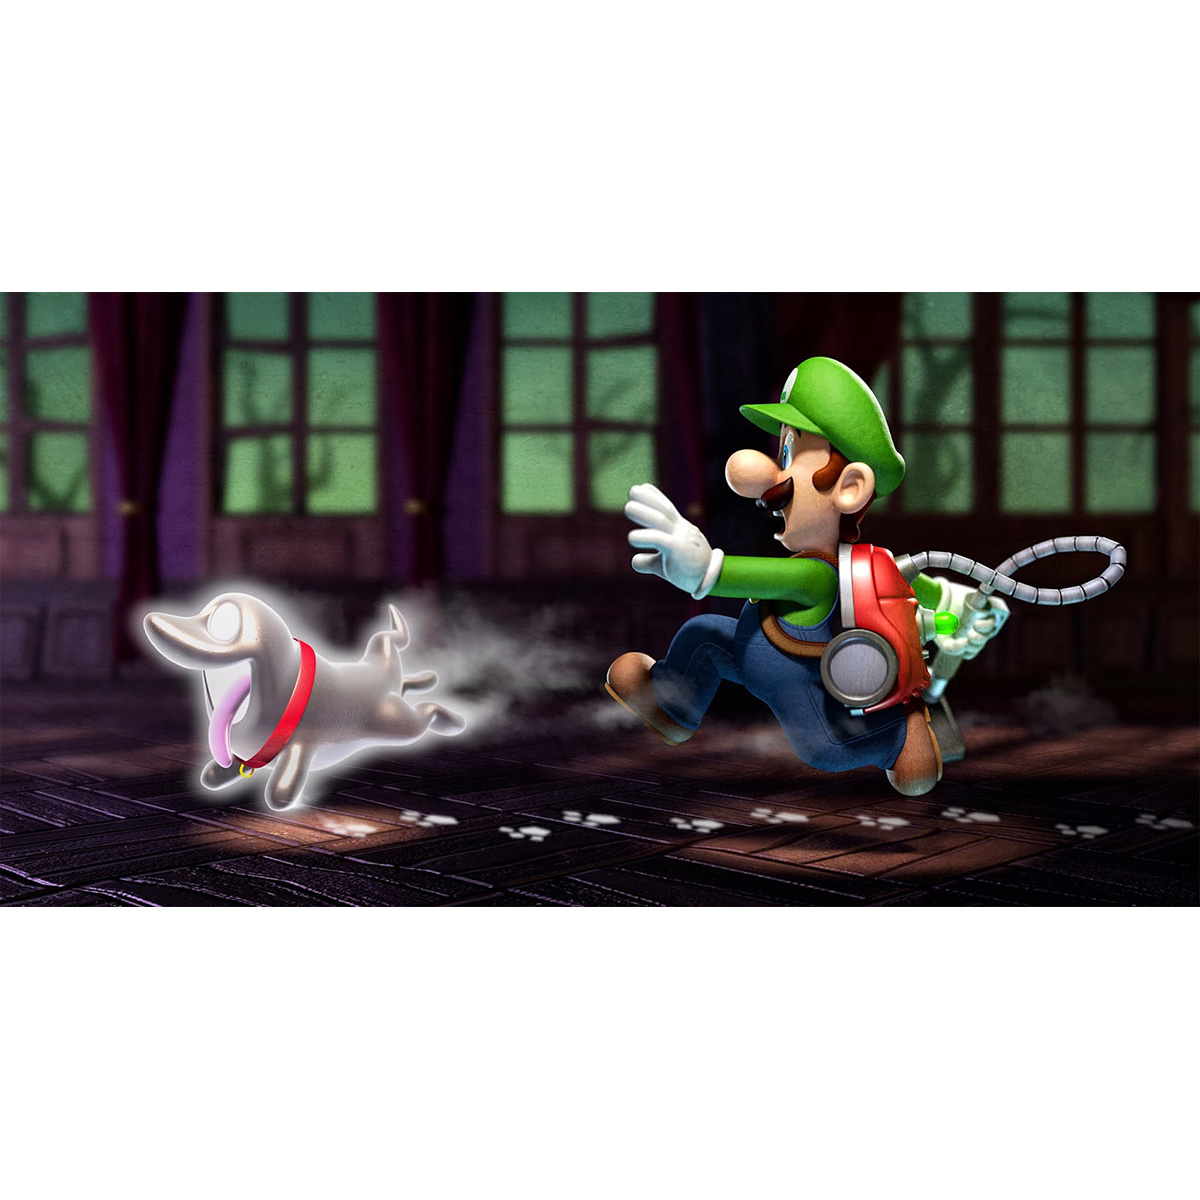 Luigi's Mansion: Dark Moon (Nintendo Selects) - 3DS